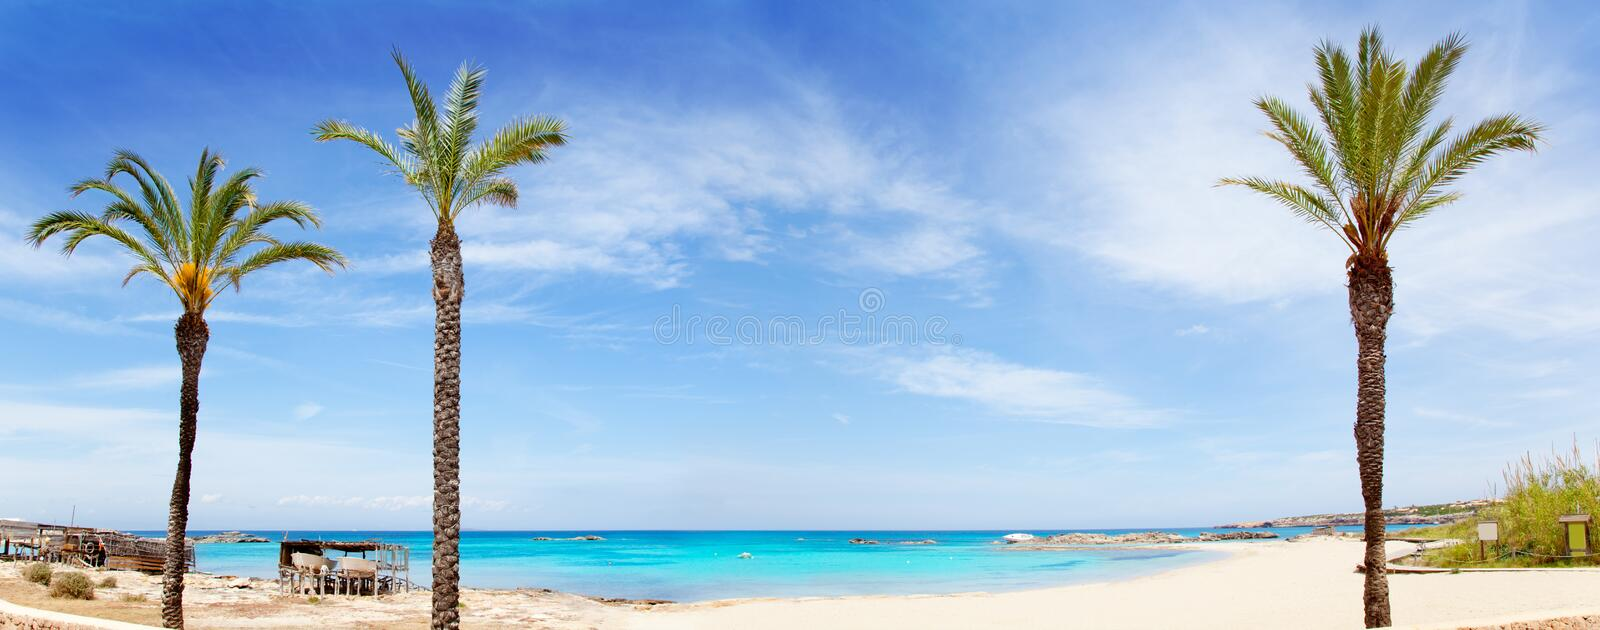 Download Els Pujols Formentera Beach With Turquoise Water Stock Image - Image of islet, coast: 25411361